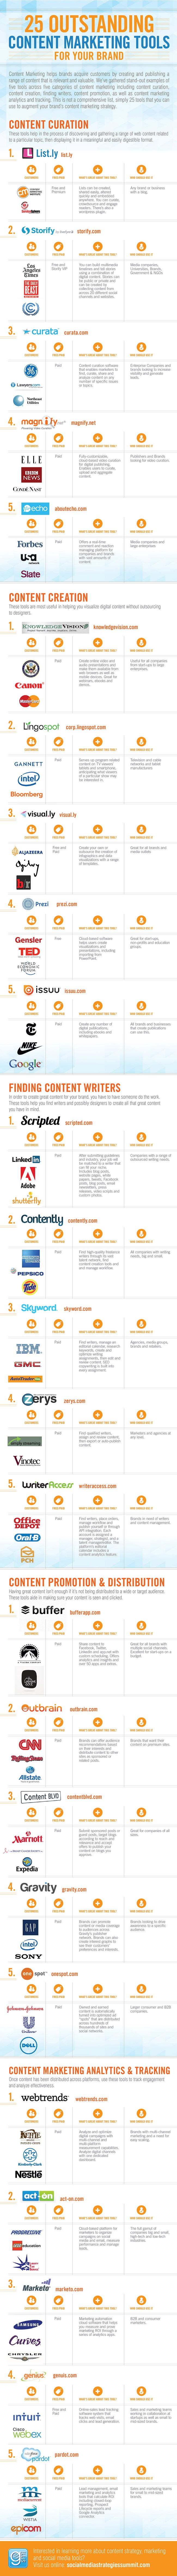 25 Content Marketing Tools to Push your Branding Efforts Further! www.socialmediamamma.com Infographic